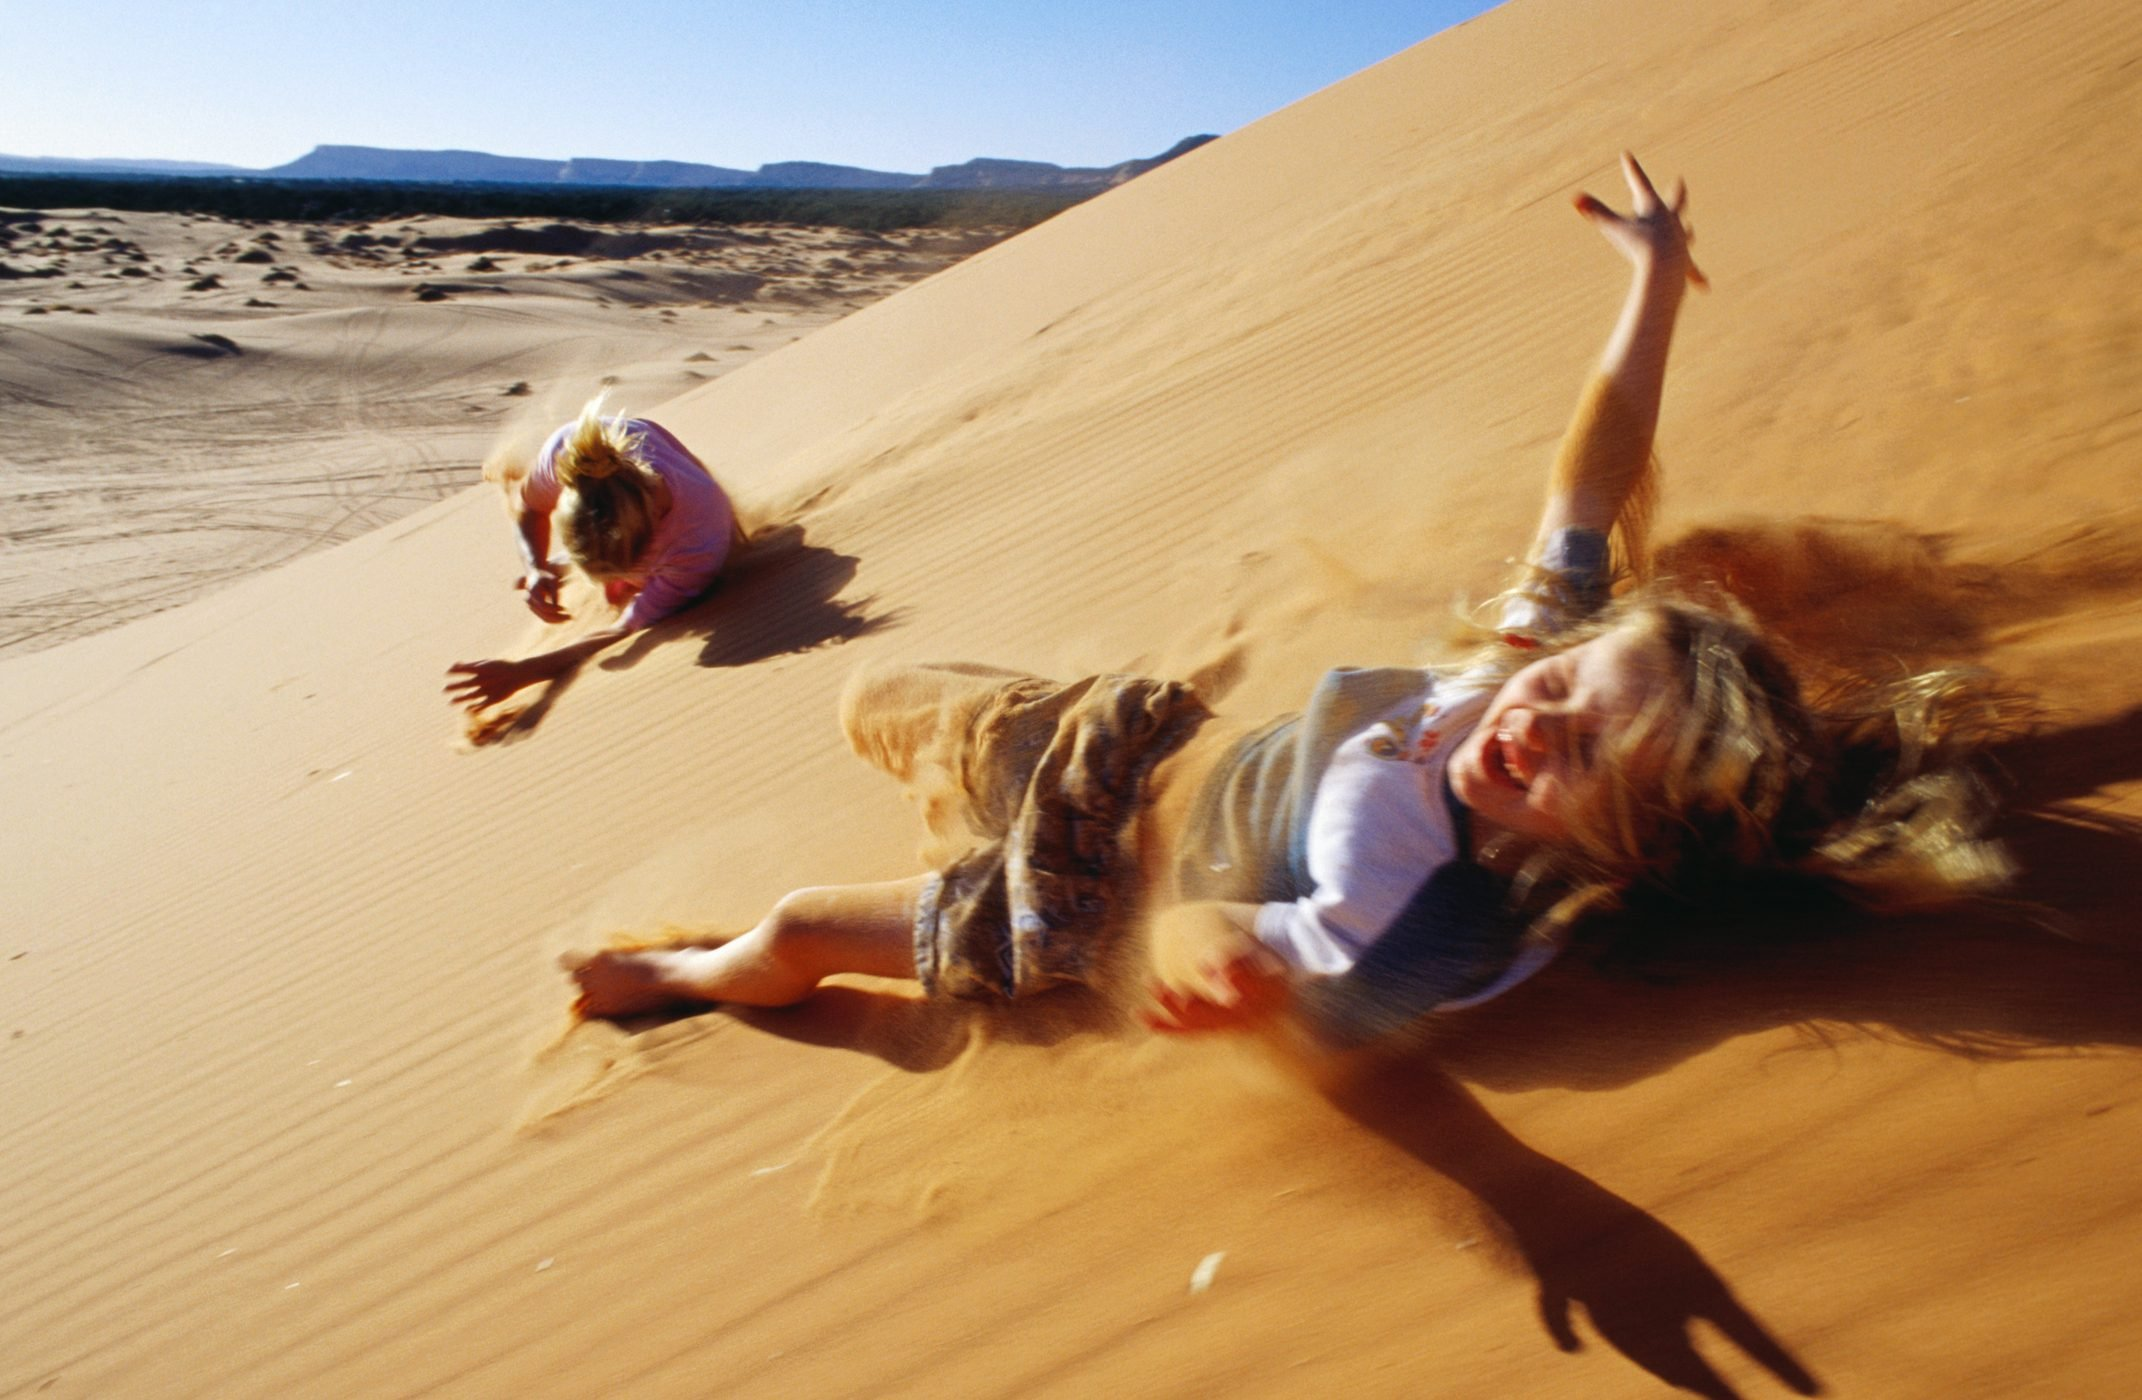 Mother and daughter rolling down sand dunes, Coral Pink Sand Dunes State Park, United States of America